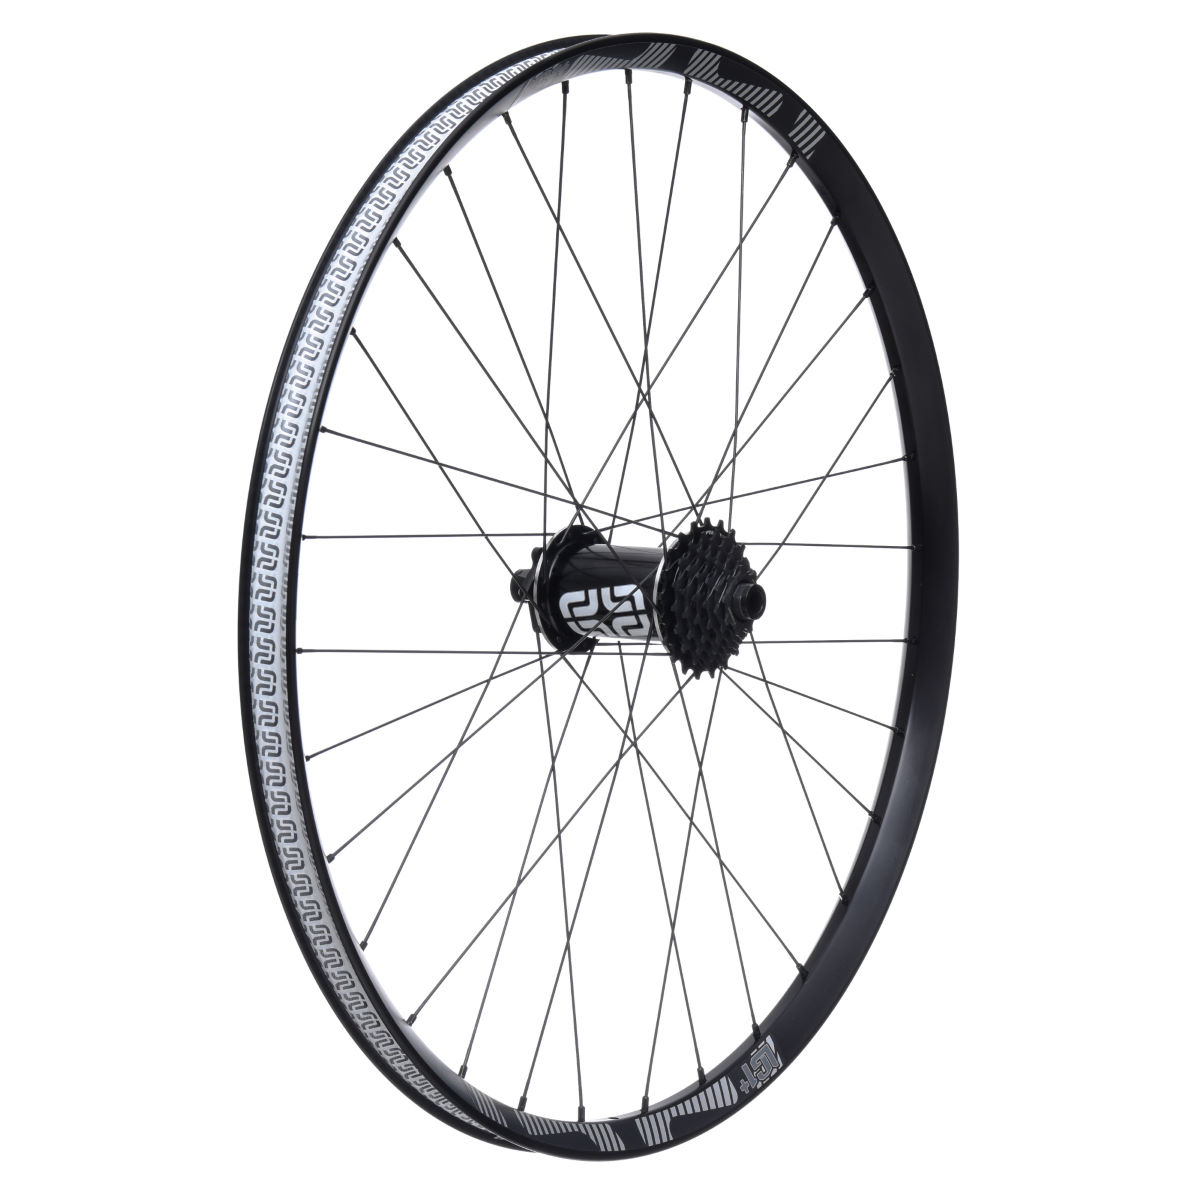 e.thirteen LG1+ DM Cassette 6-Bolt Rear MTB Wheel - Ruedas traseras